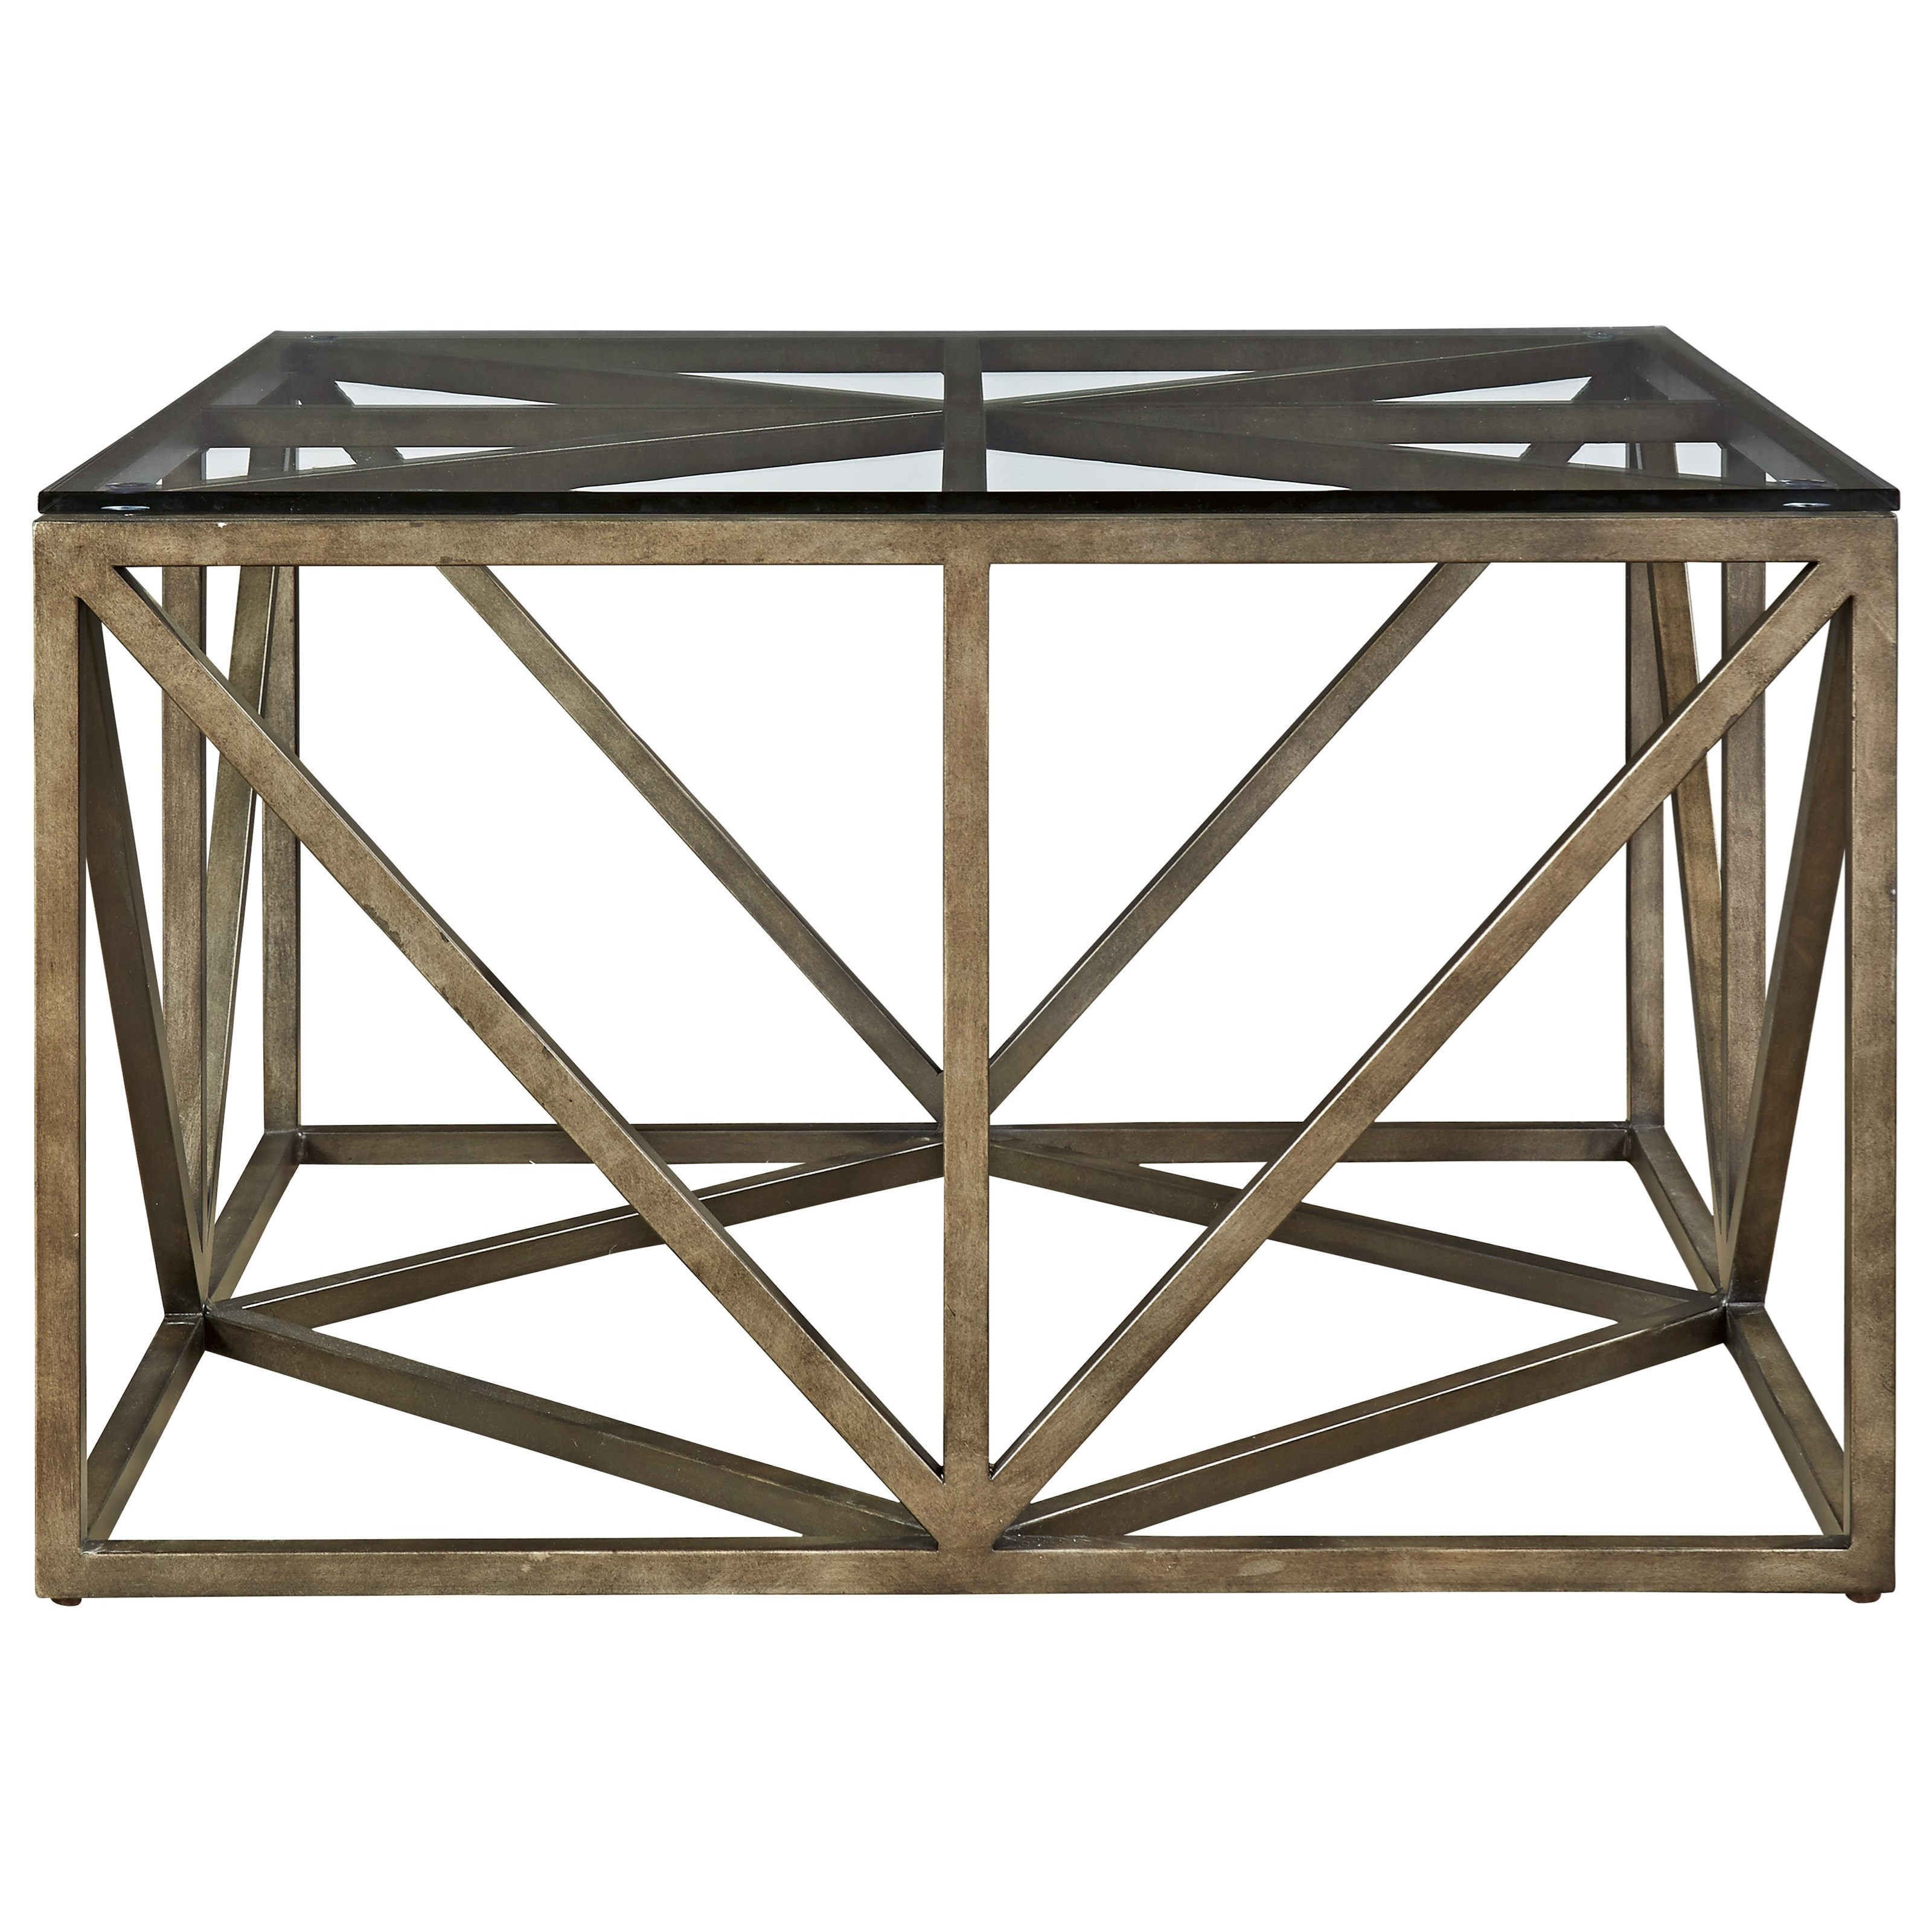 Universal Authenticity Truss Square Cocktail Table - Item Number: 572801